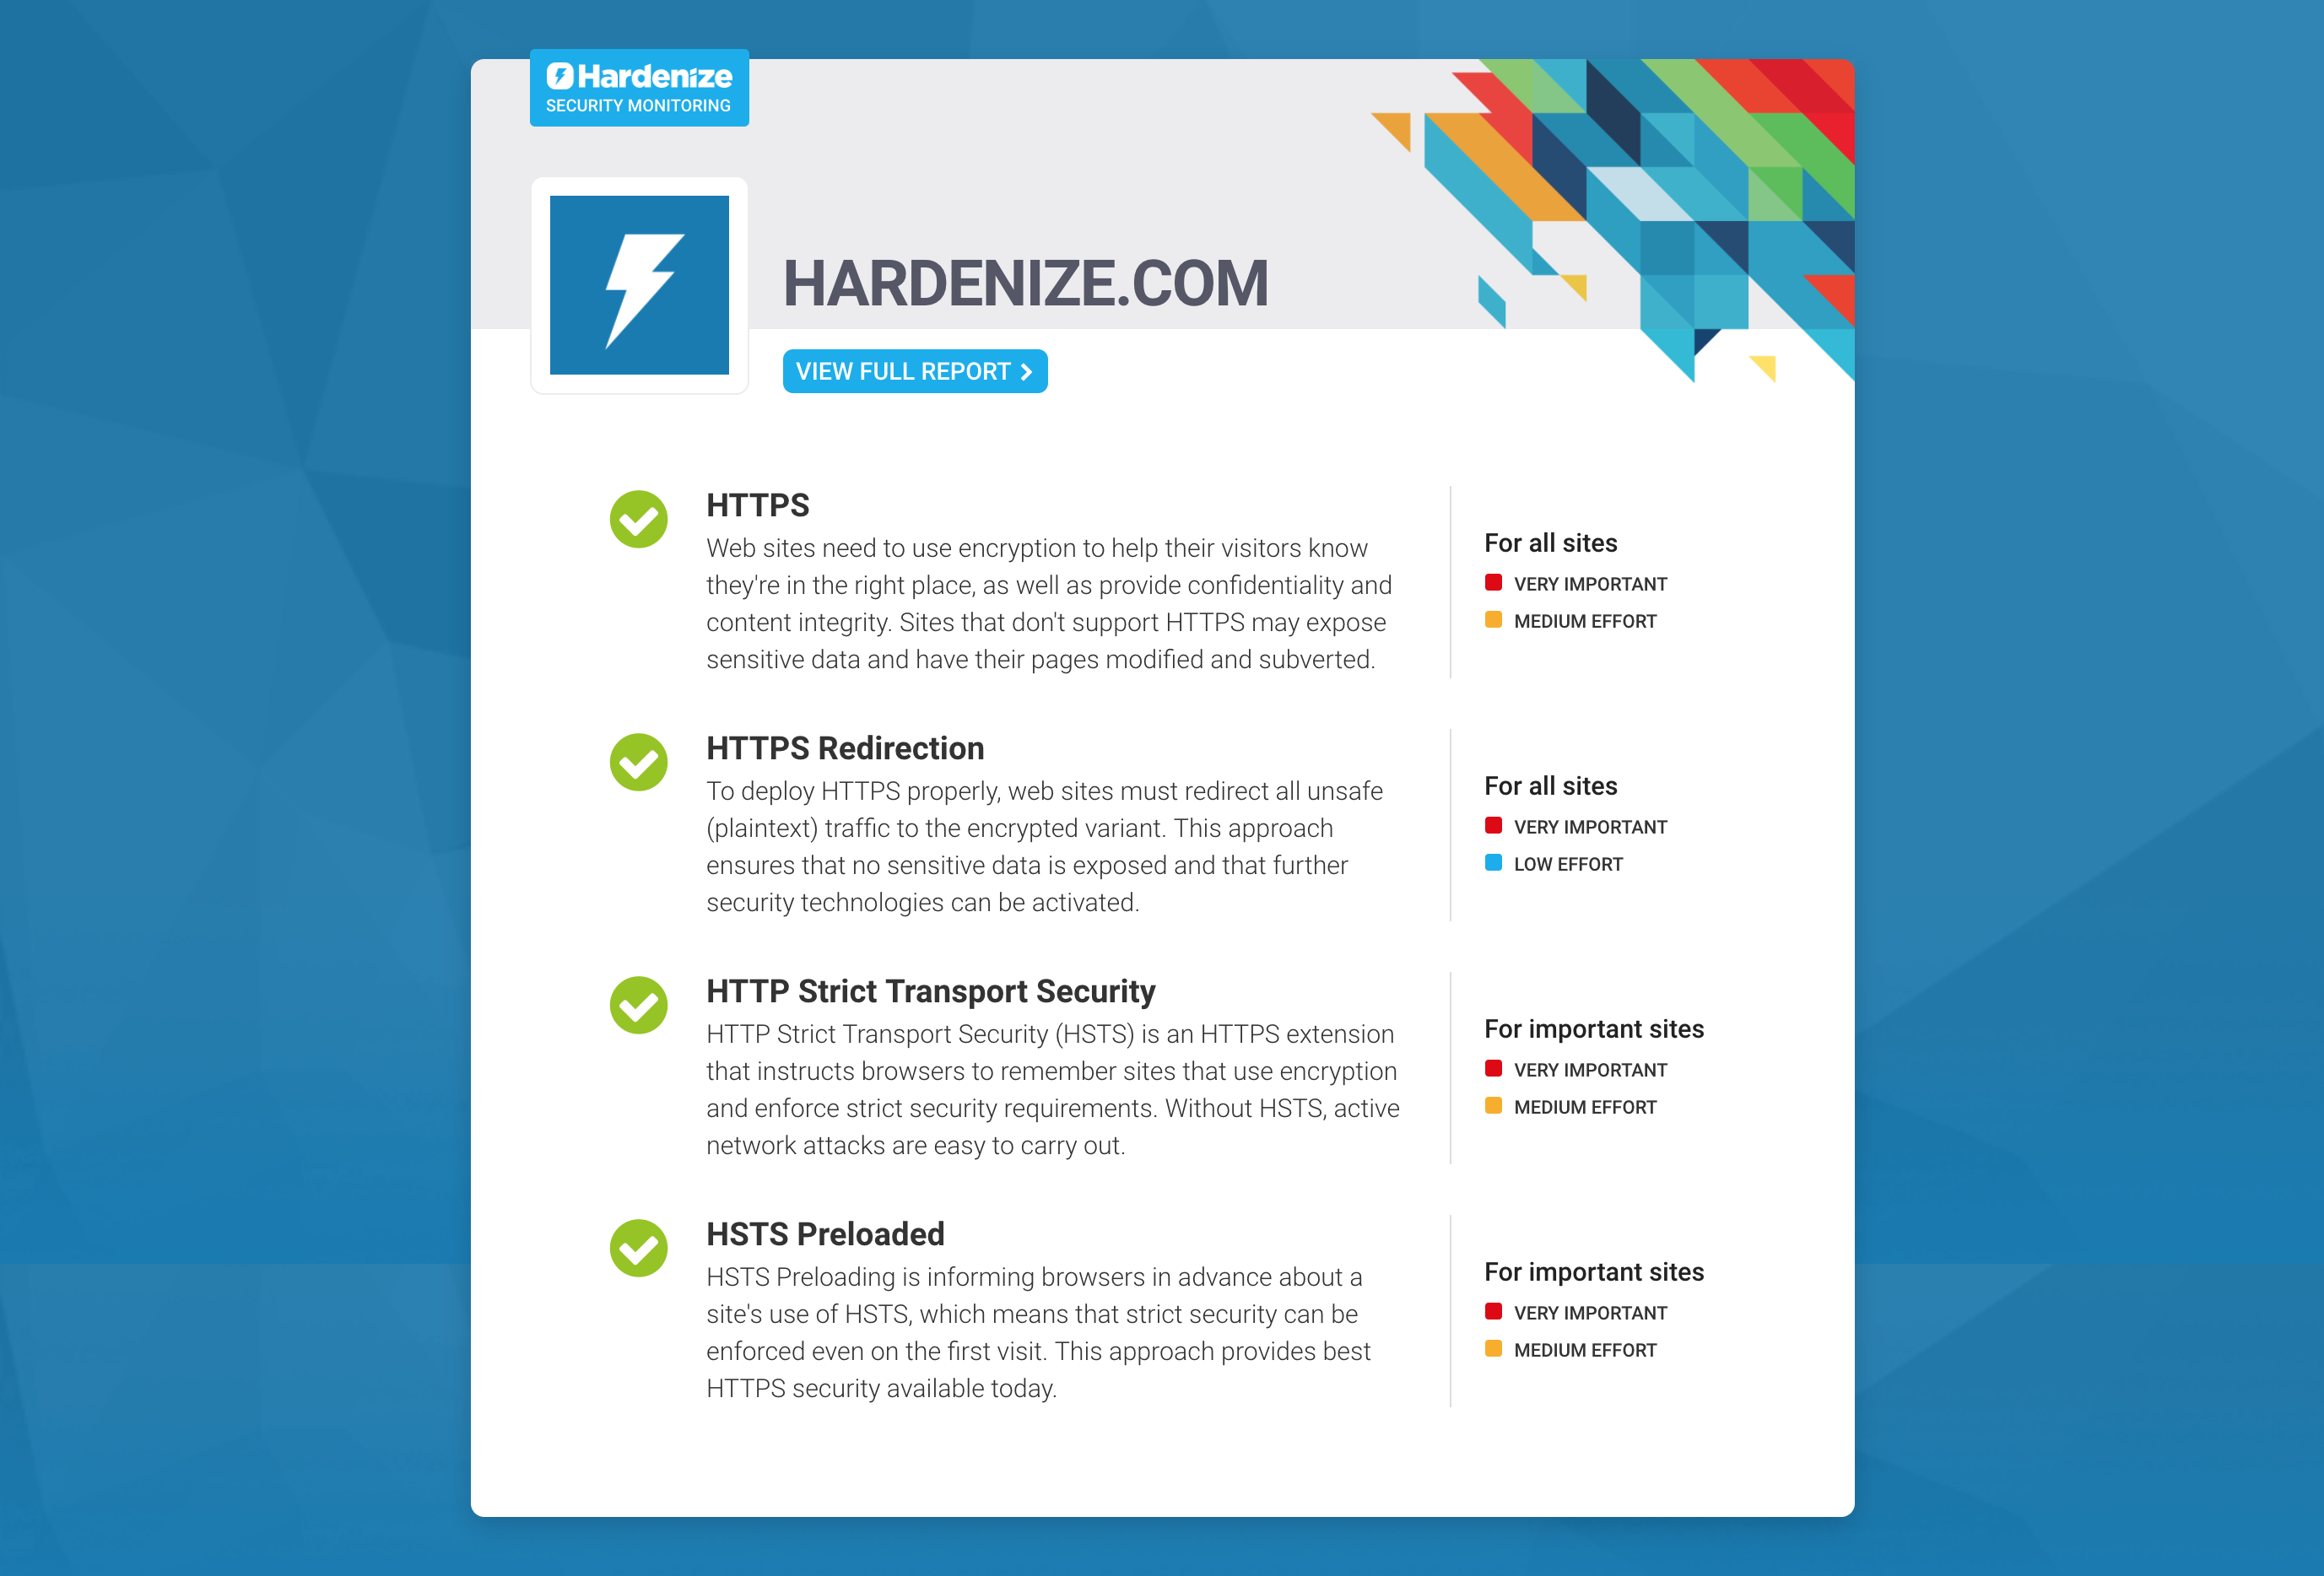 Hardenize Security Badge Blog Data Technologies To Go With The We Now Also Have A Special Report Summary That Displays Only Four Main Configuration Elements Without Clutter Hope This